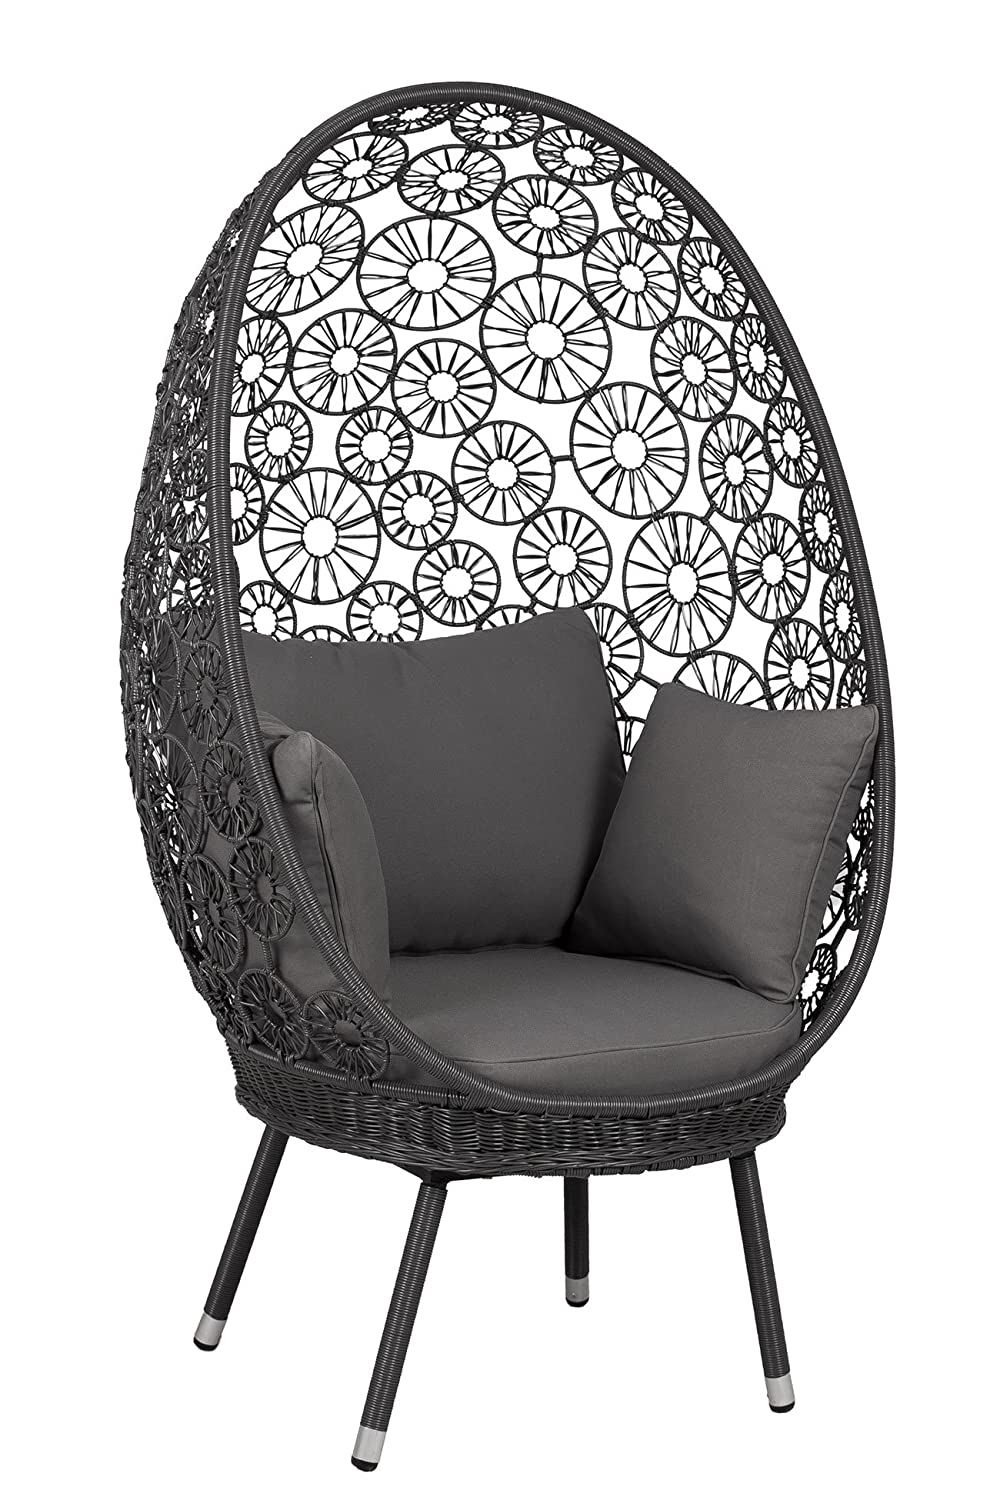 ei sessel geflecht outliv arona korbsessel polyrattan schwarz grau stuhl garten online bestellen. Black Bedroom Furniture Sets. Home Design Ideas